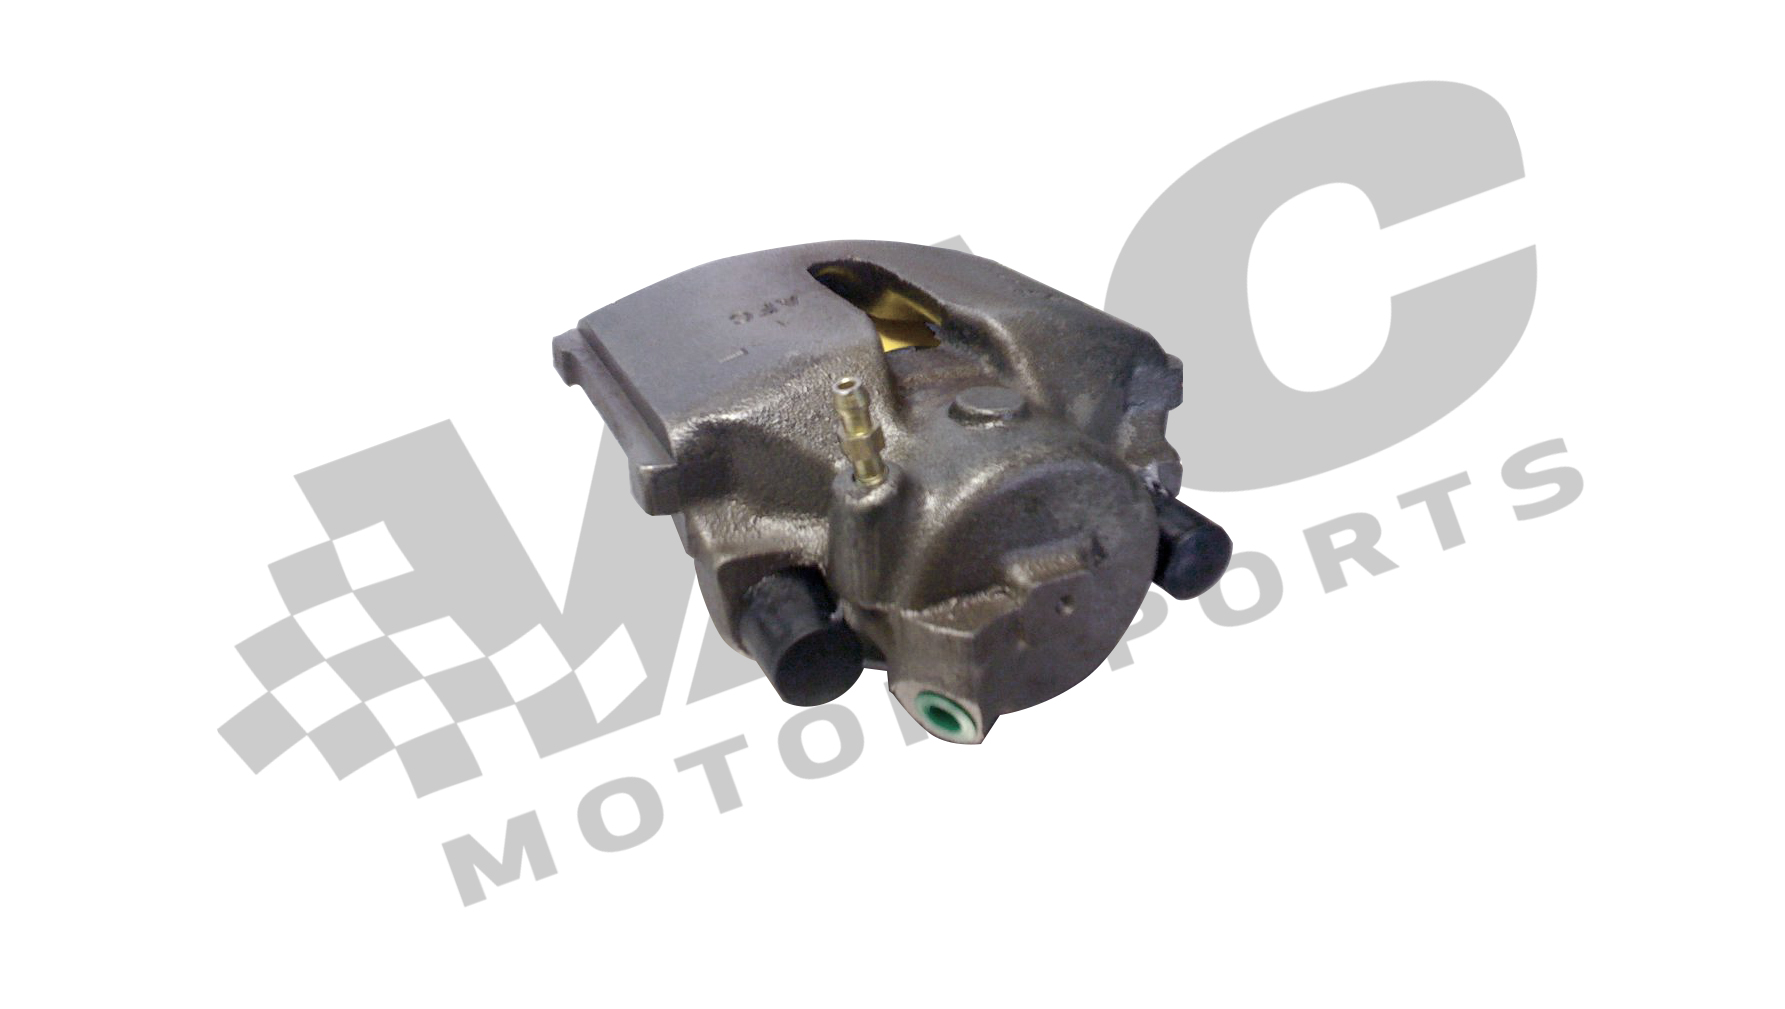 Image shown is for example. At times, not all calipers are available from stock. Please contact us if you need to MAIN